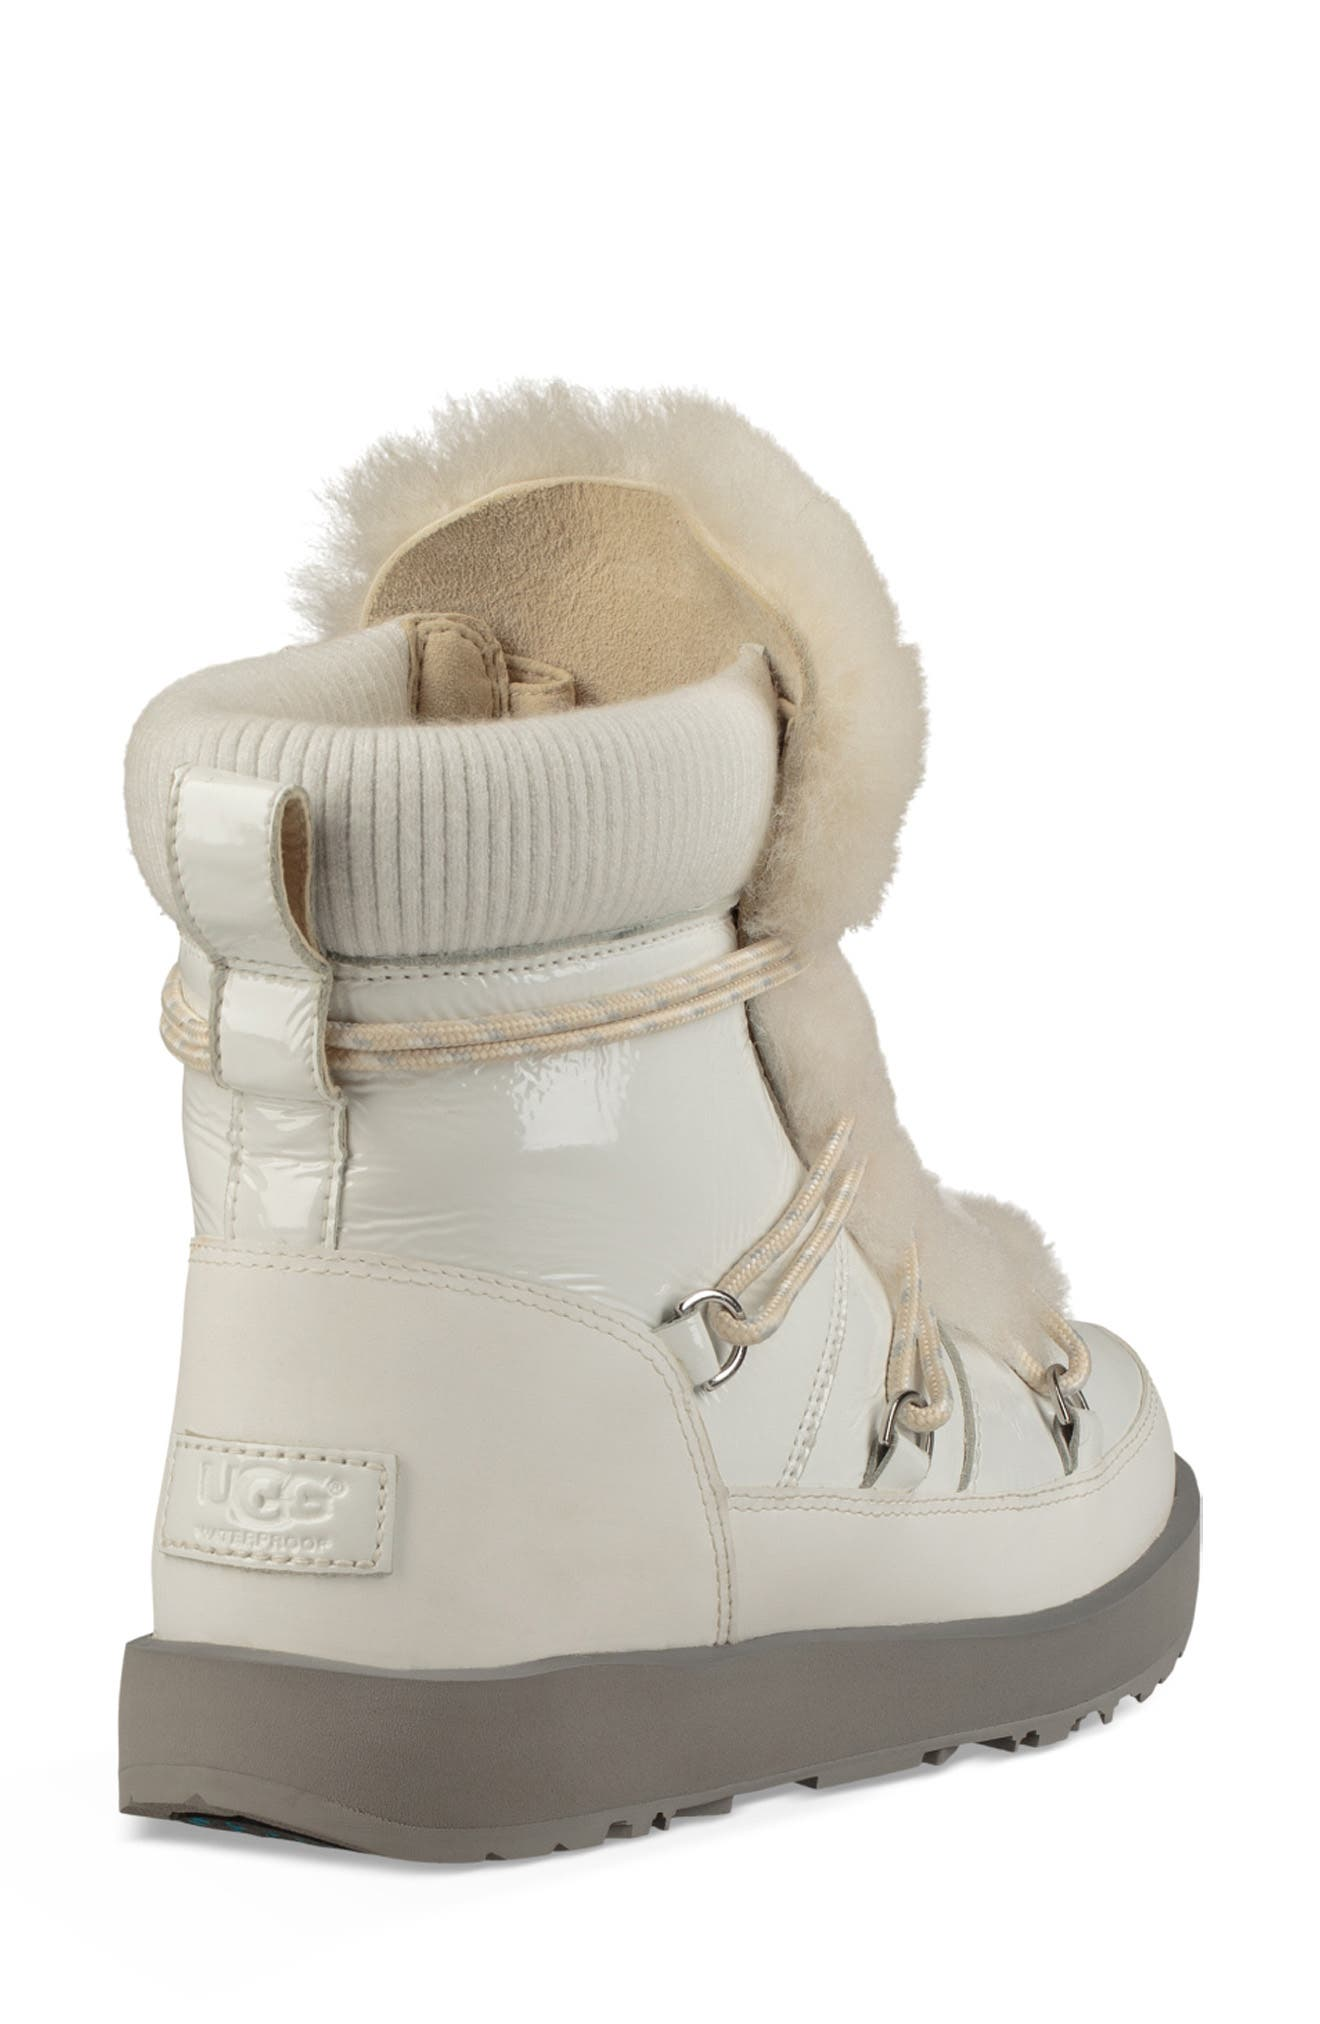 Highland Genuine Shearling Waterproof Bootie,                             Alternate thumbnail 2, color,                             WHITE LEATHER